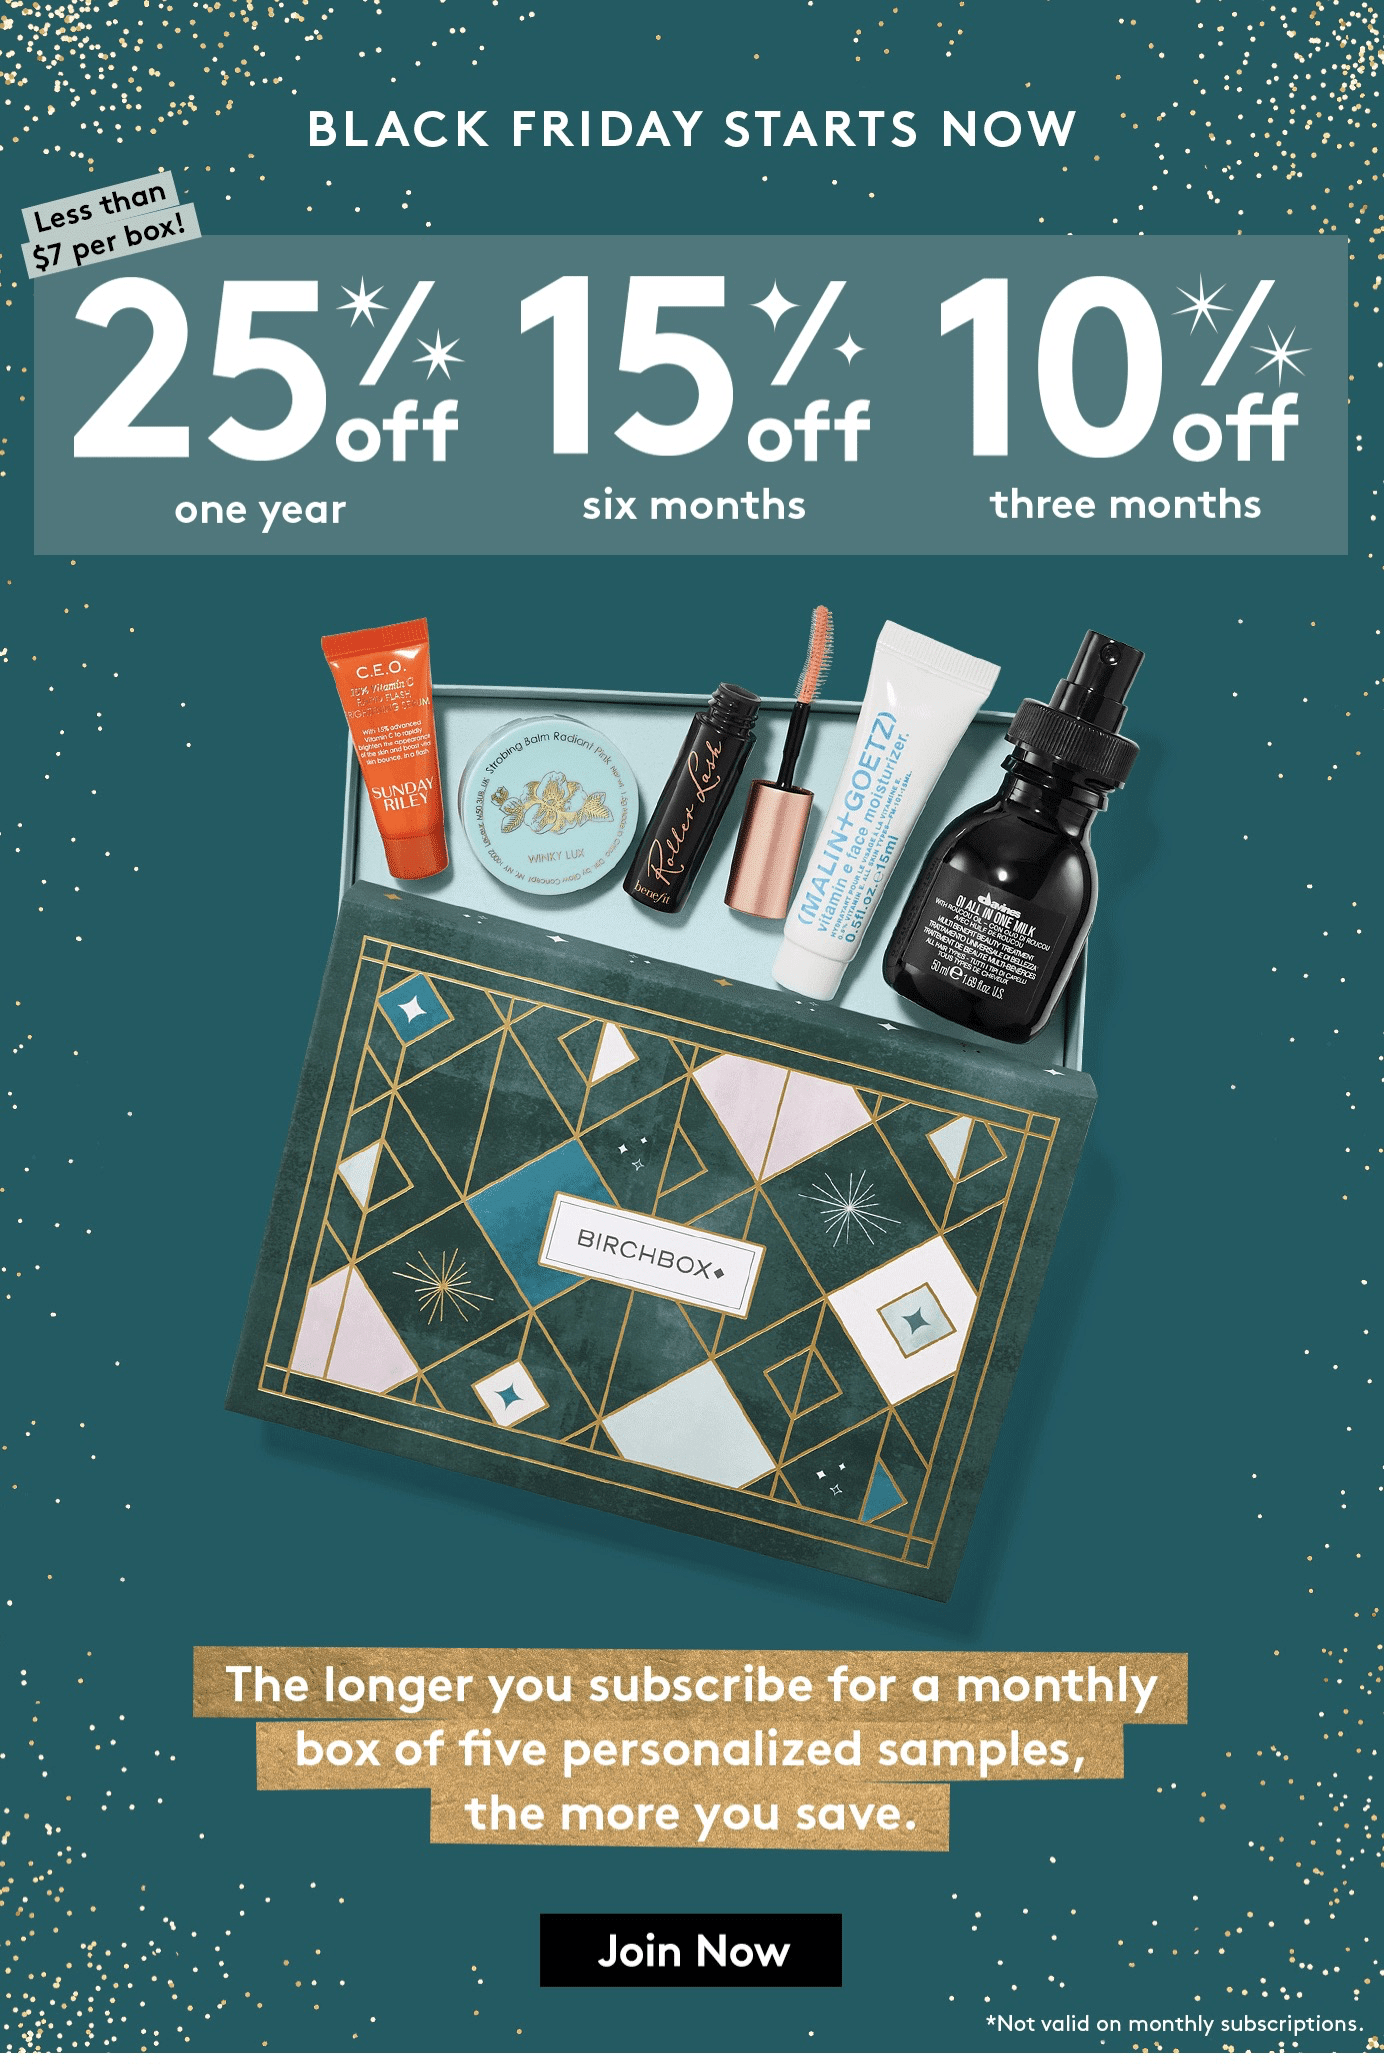 Birchbox Cyber Monday Coupon: Subscription Plans Up to 25% Off!